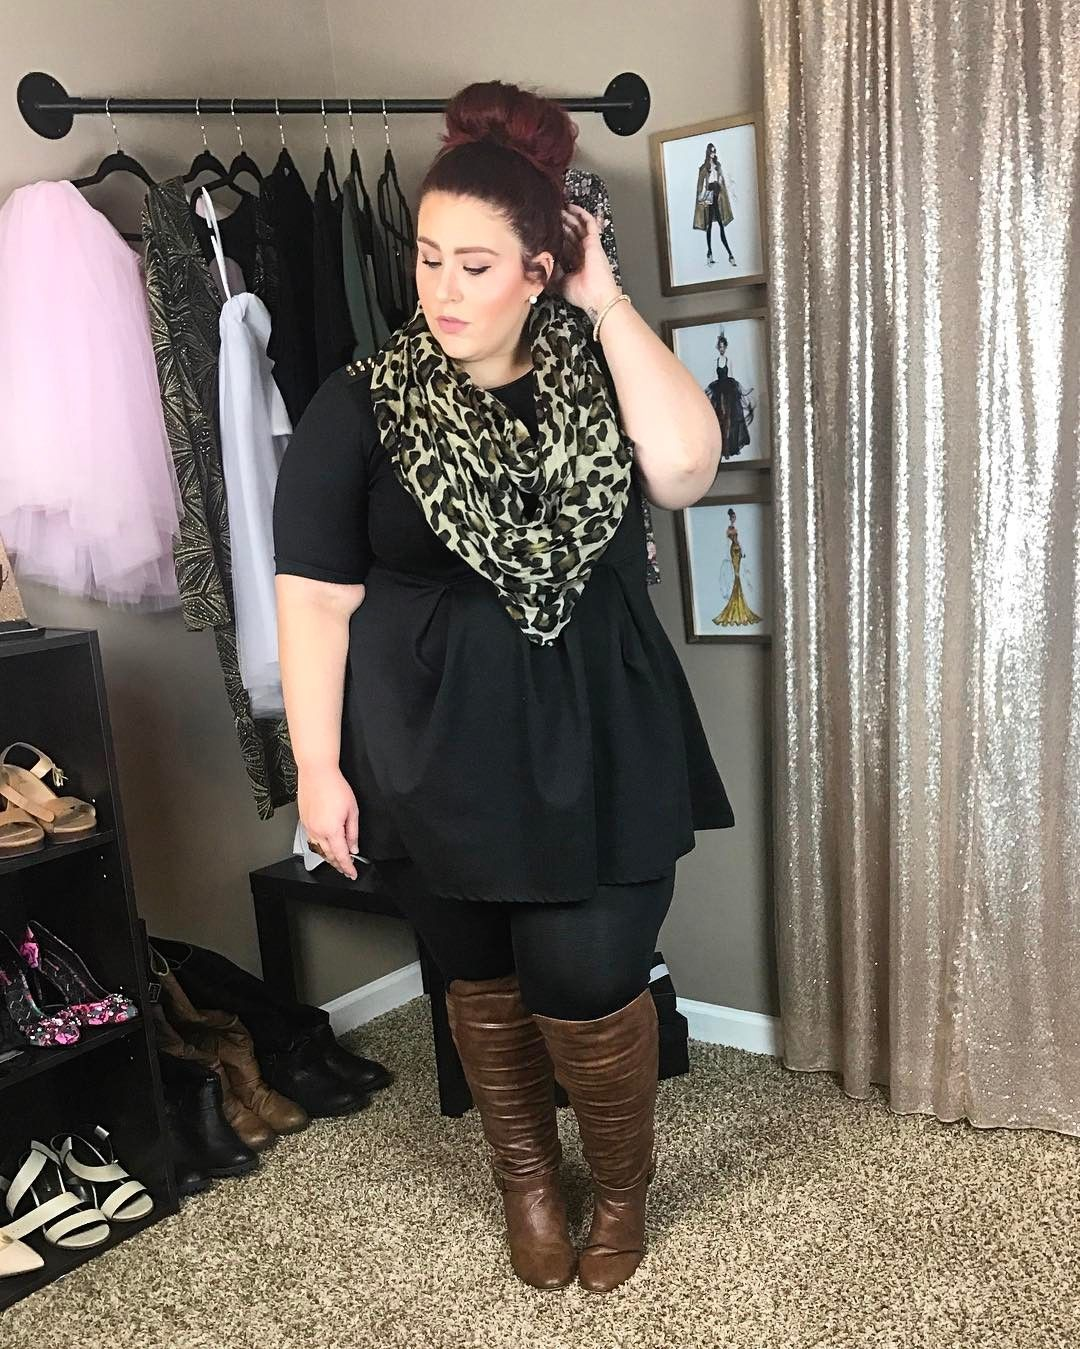 Affordable Trendy Plus Size Clothing Cheap Online Plus Size Clothing Stores Cheap Plu Plus Size Legging Outfits Plus Size Fall Outfit Outfits With Leggings